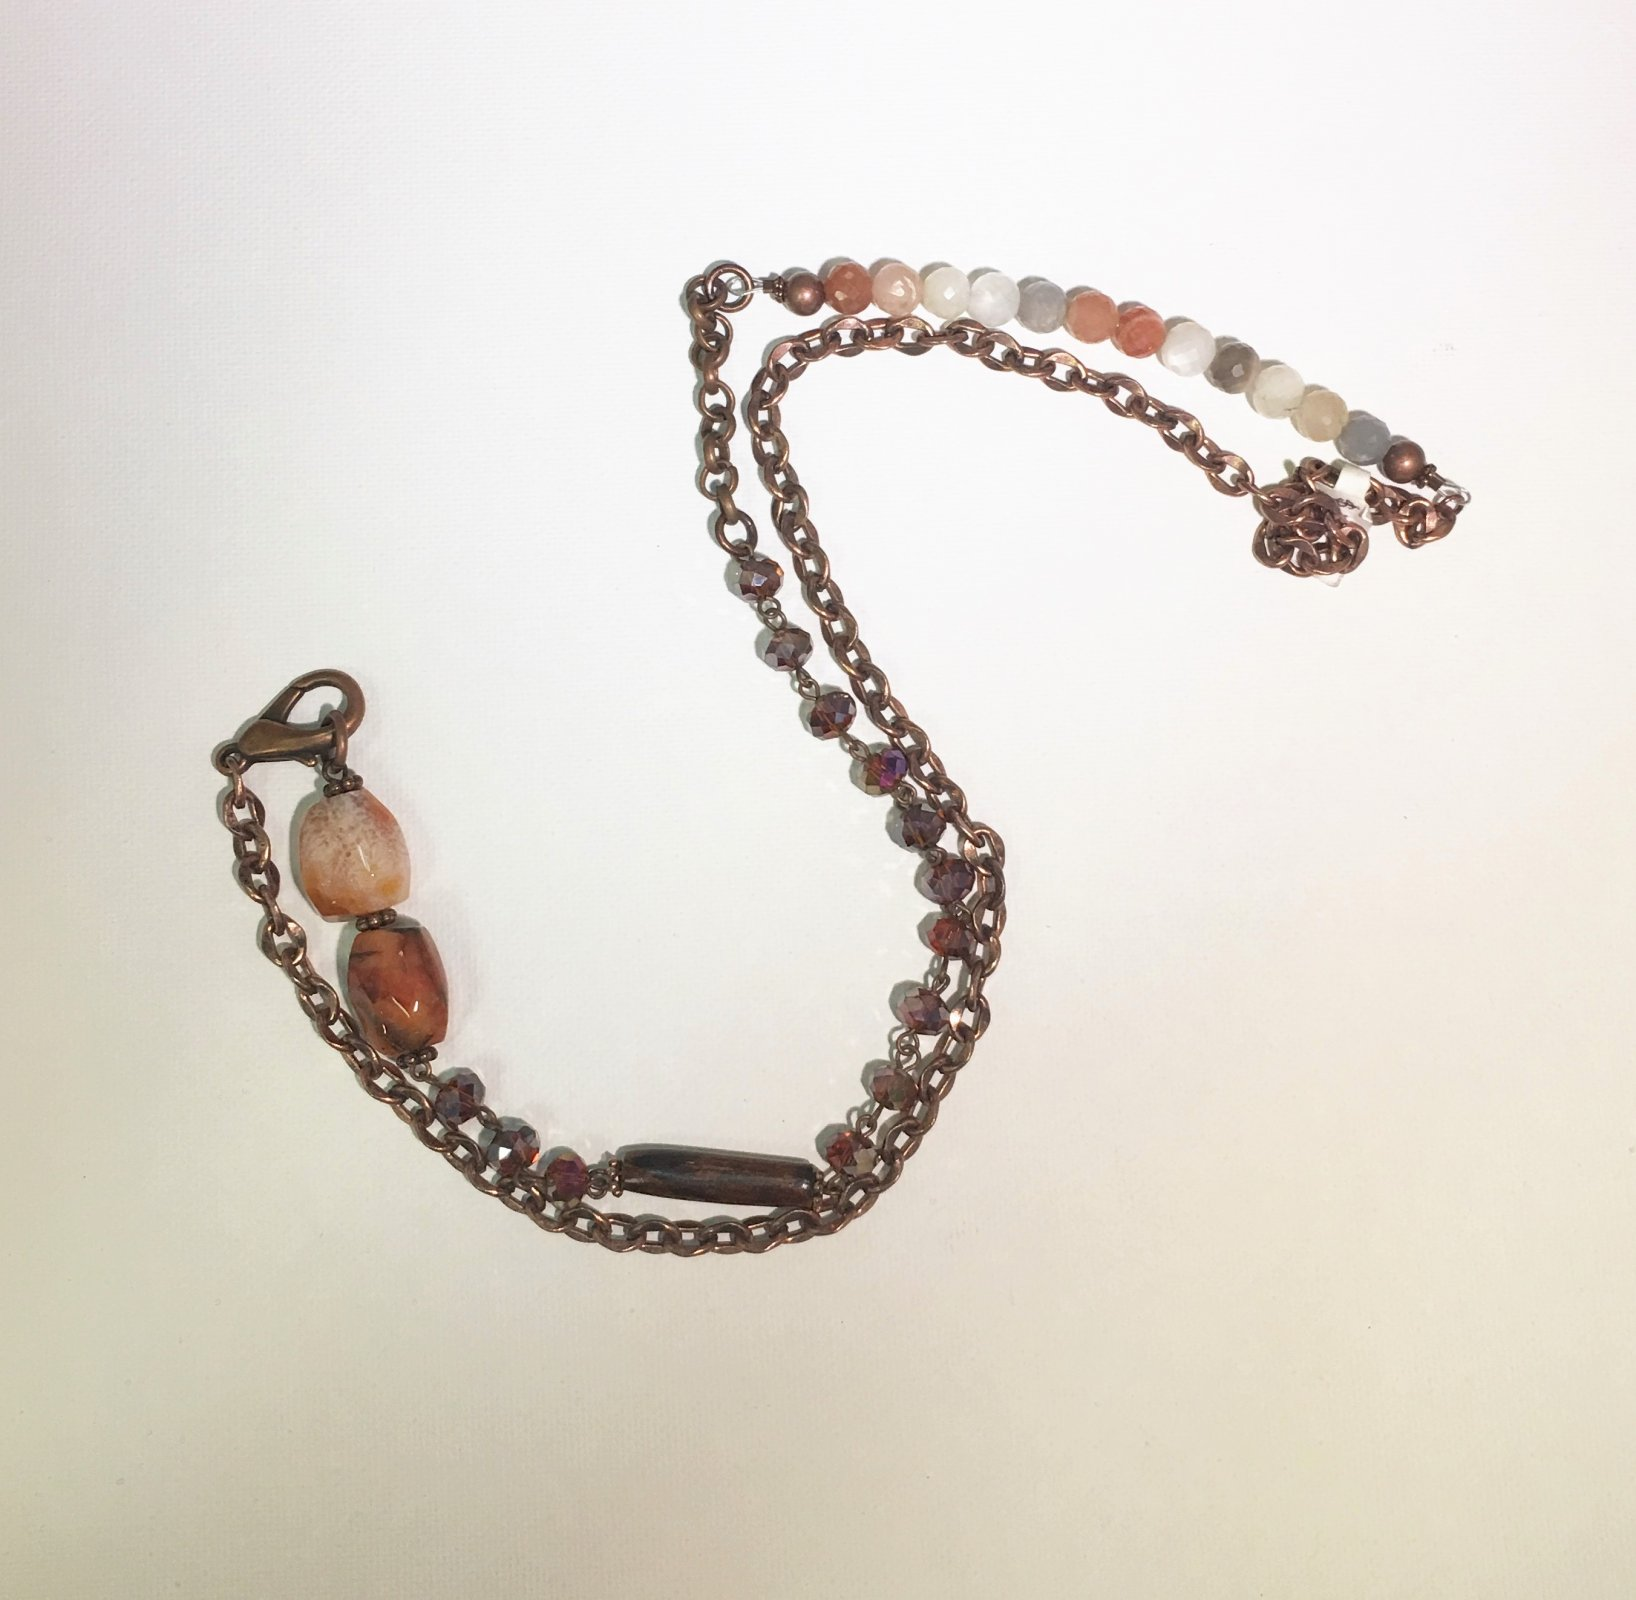 Bronze Chain with Multi-color Beads